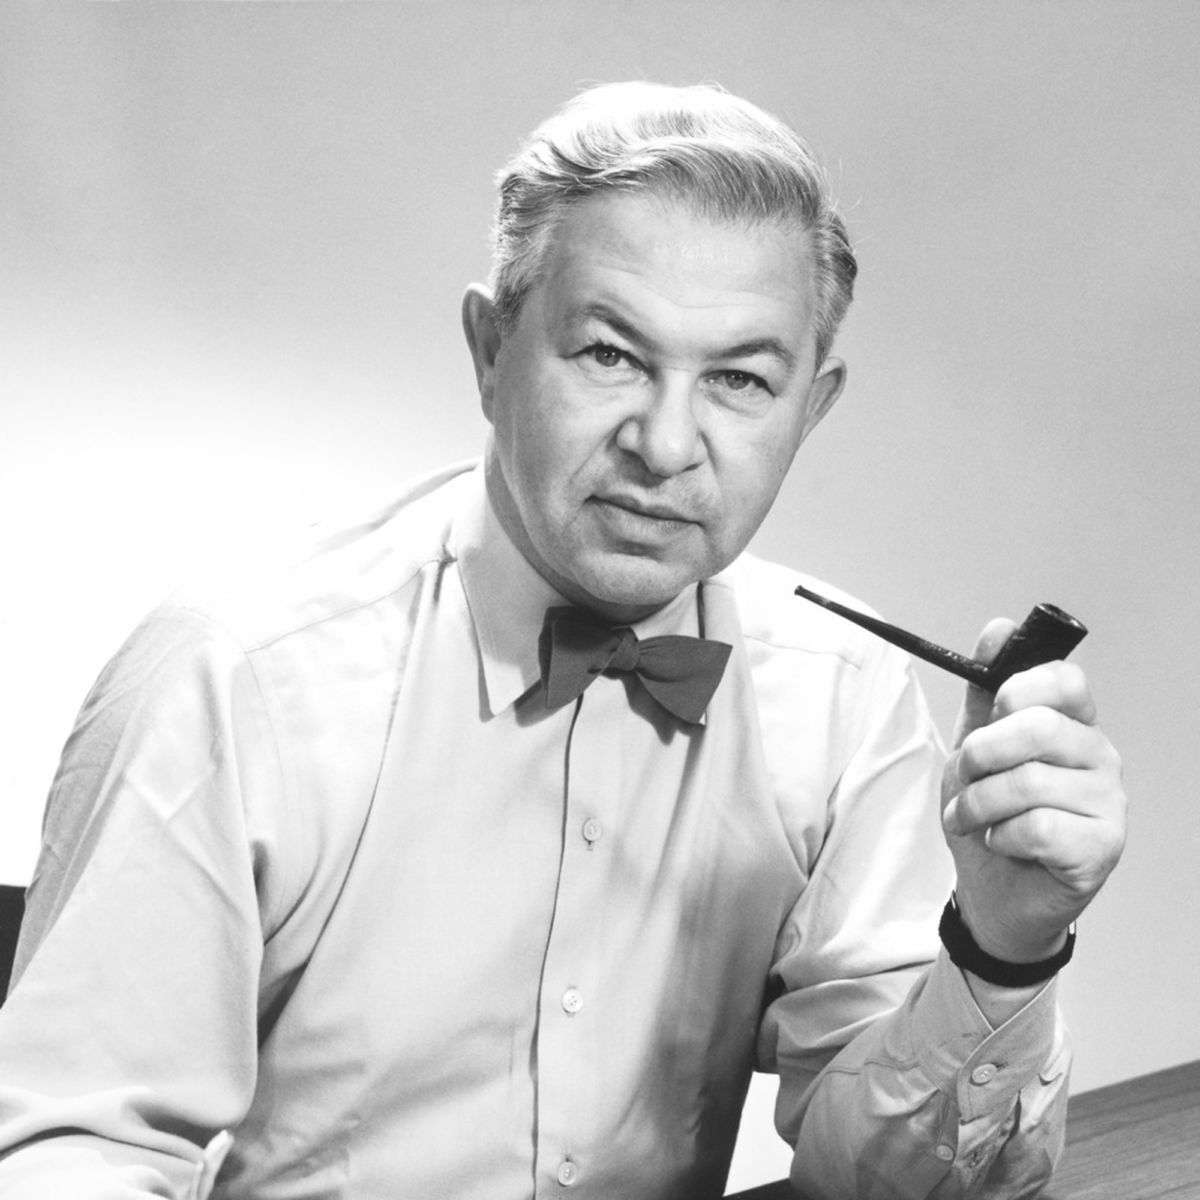 The iconic Danish designer, Arne Jacobsen, is famous for his Egg, Swan and Series 7 chairs.